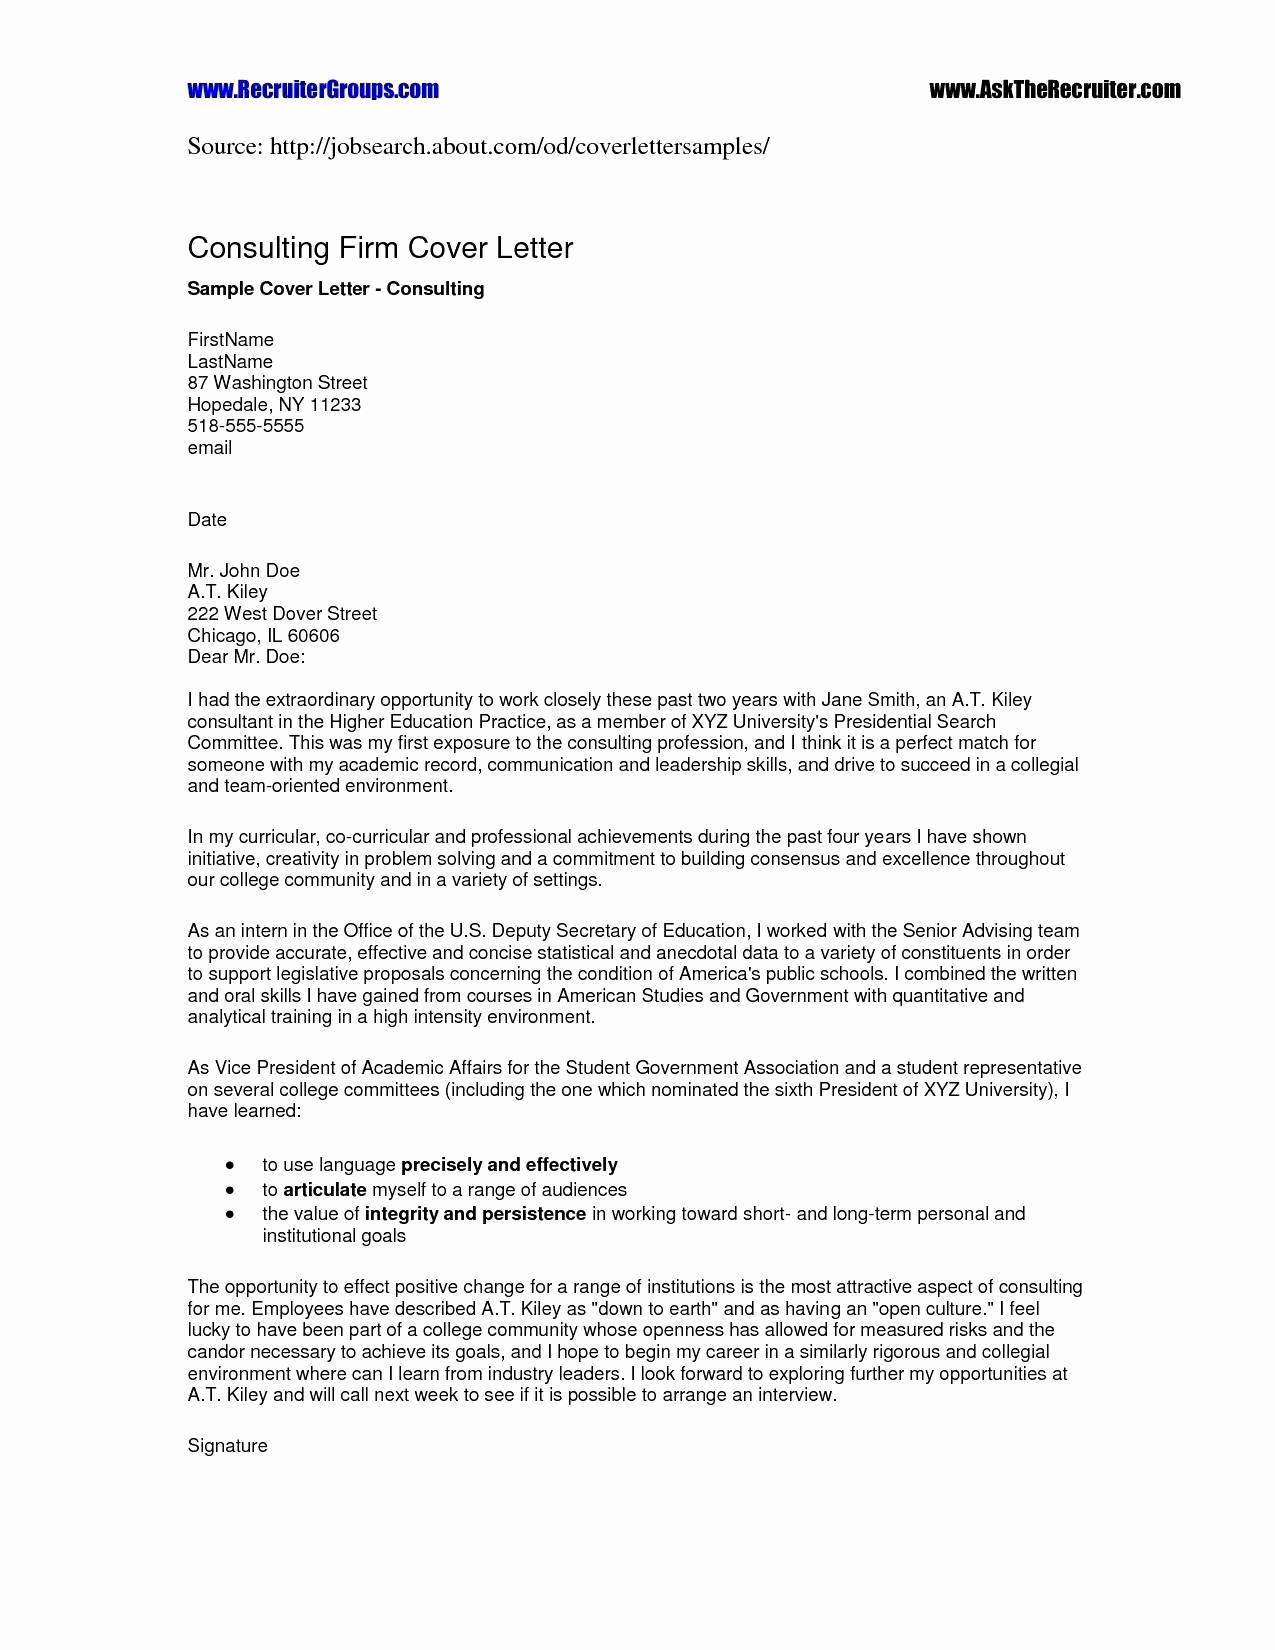 Free Fax Cover Letter Template Word - 41 Fresh Printable Fax Cover Letter Resume Templates Ideas 2018